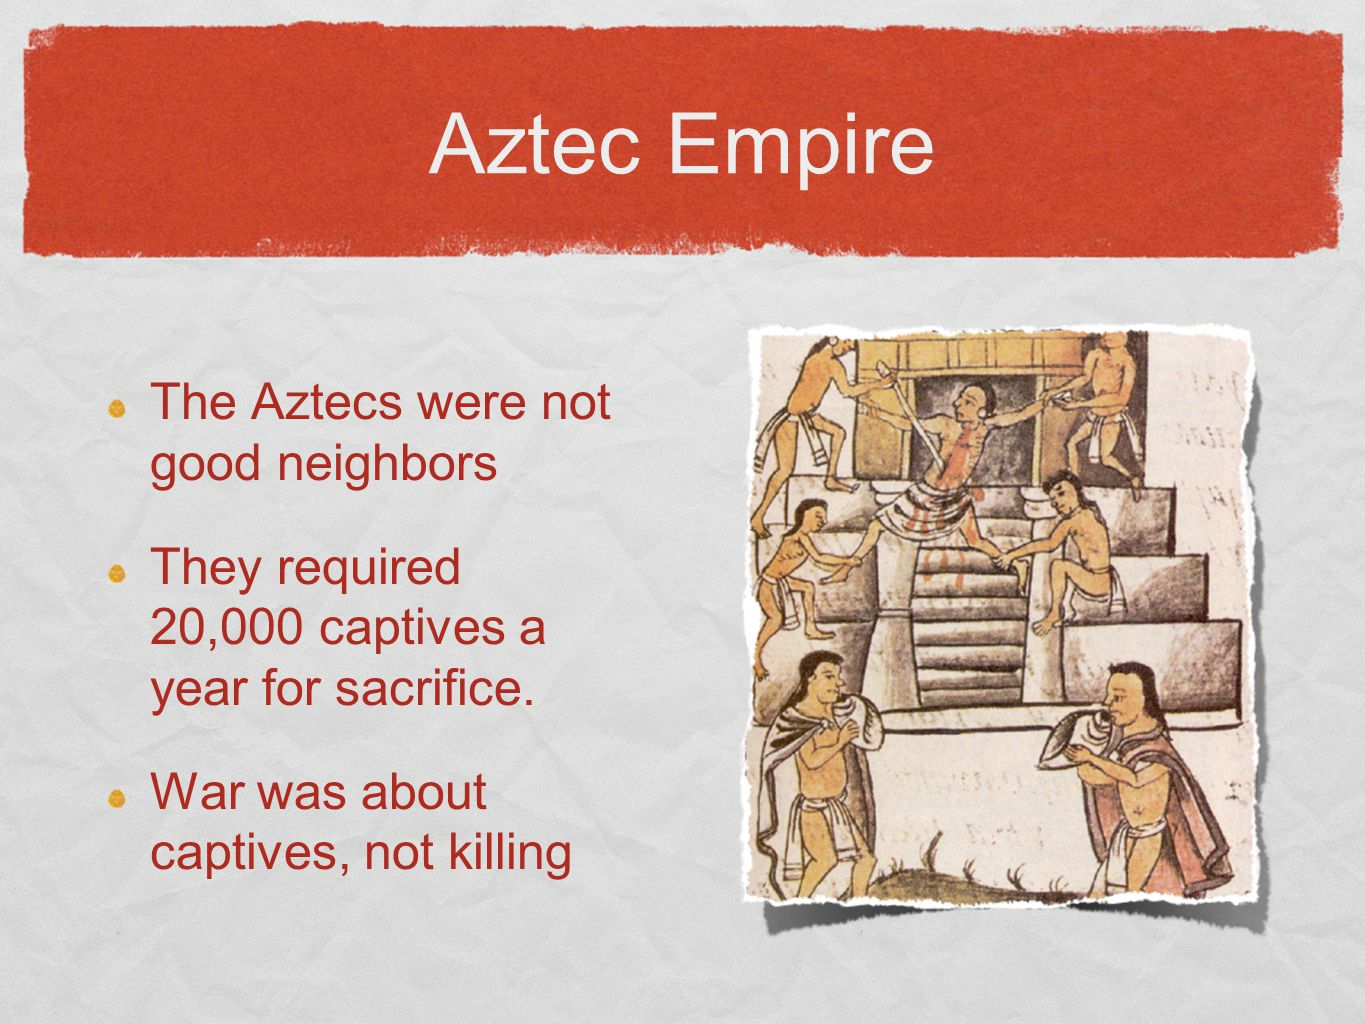 Aztec Empire The Aztecs were not good neighbors They required 20,000 captives a year for sacrifice. War was about captives, not killing